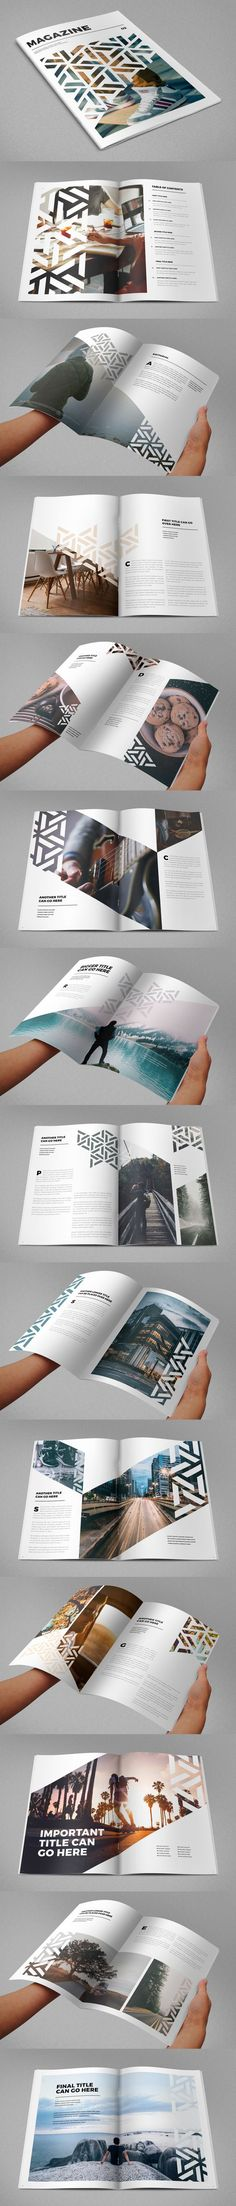 Ideal If you need to design any kinds of brochure or flyer then you can check out